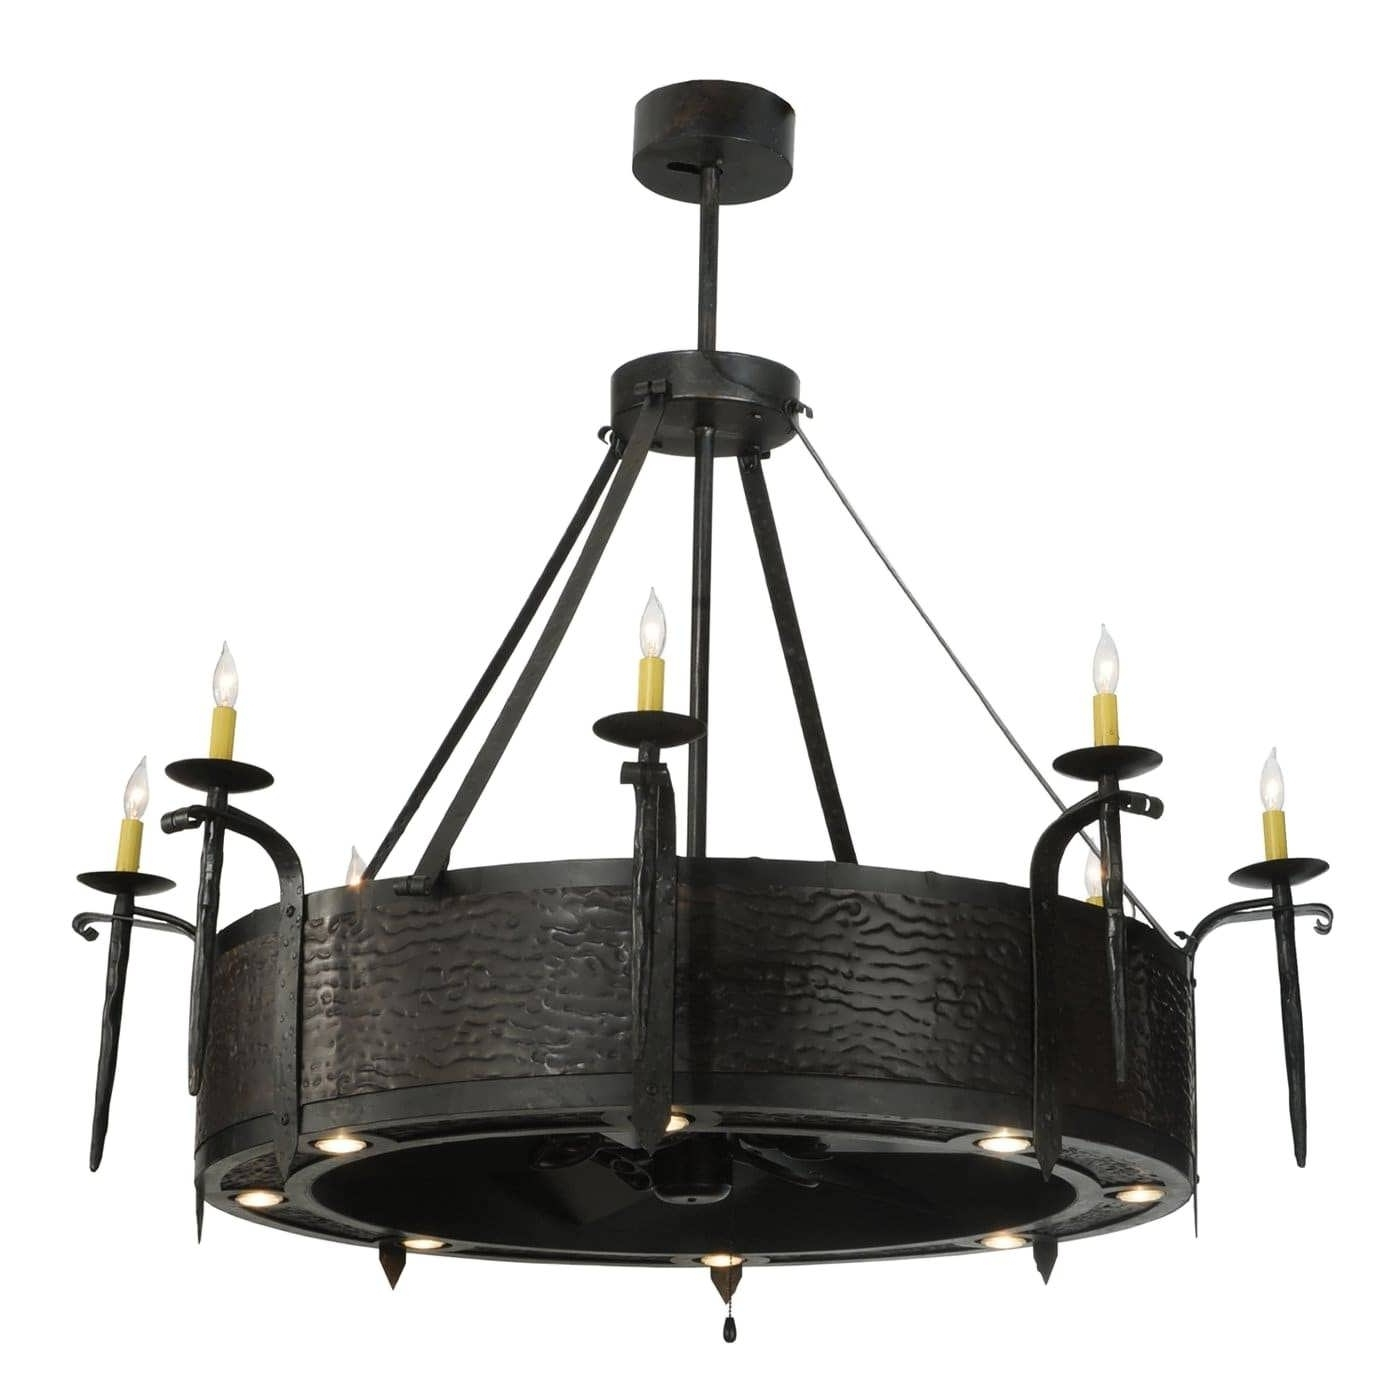 Large Cream Chandelier Throughout Well Known Chandelier : Cream Chandelier Black Chandelier Kitchen Chandelier (View 15 of 20)